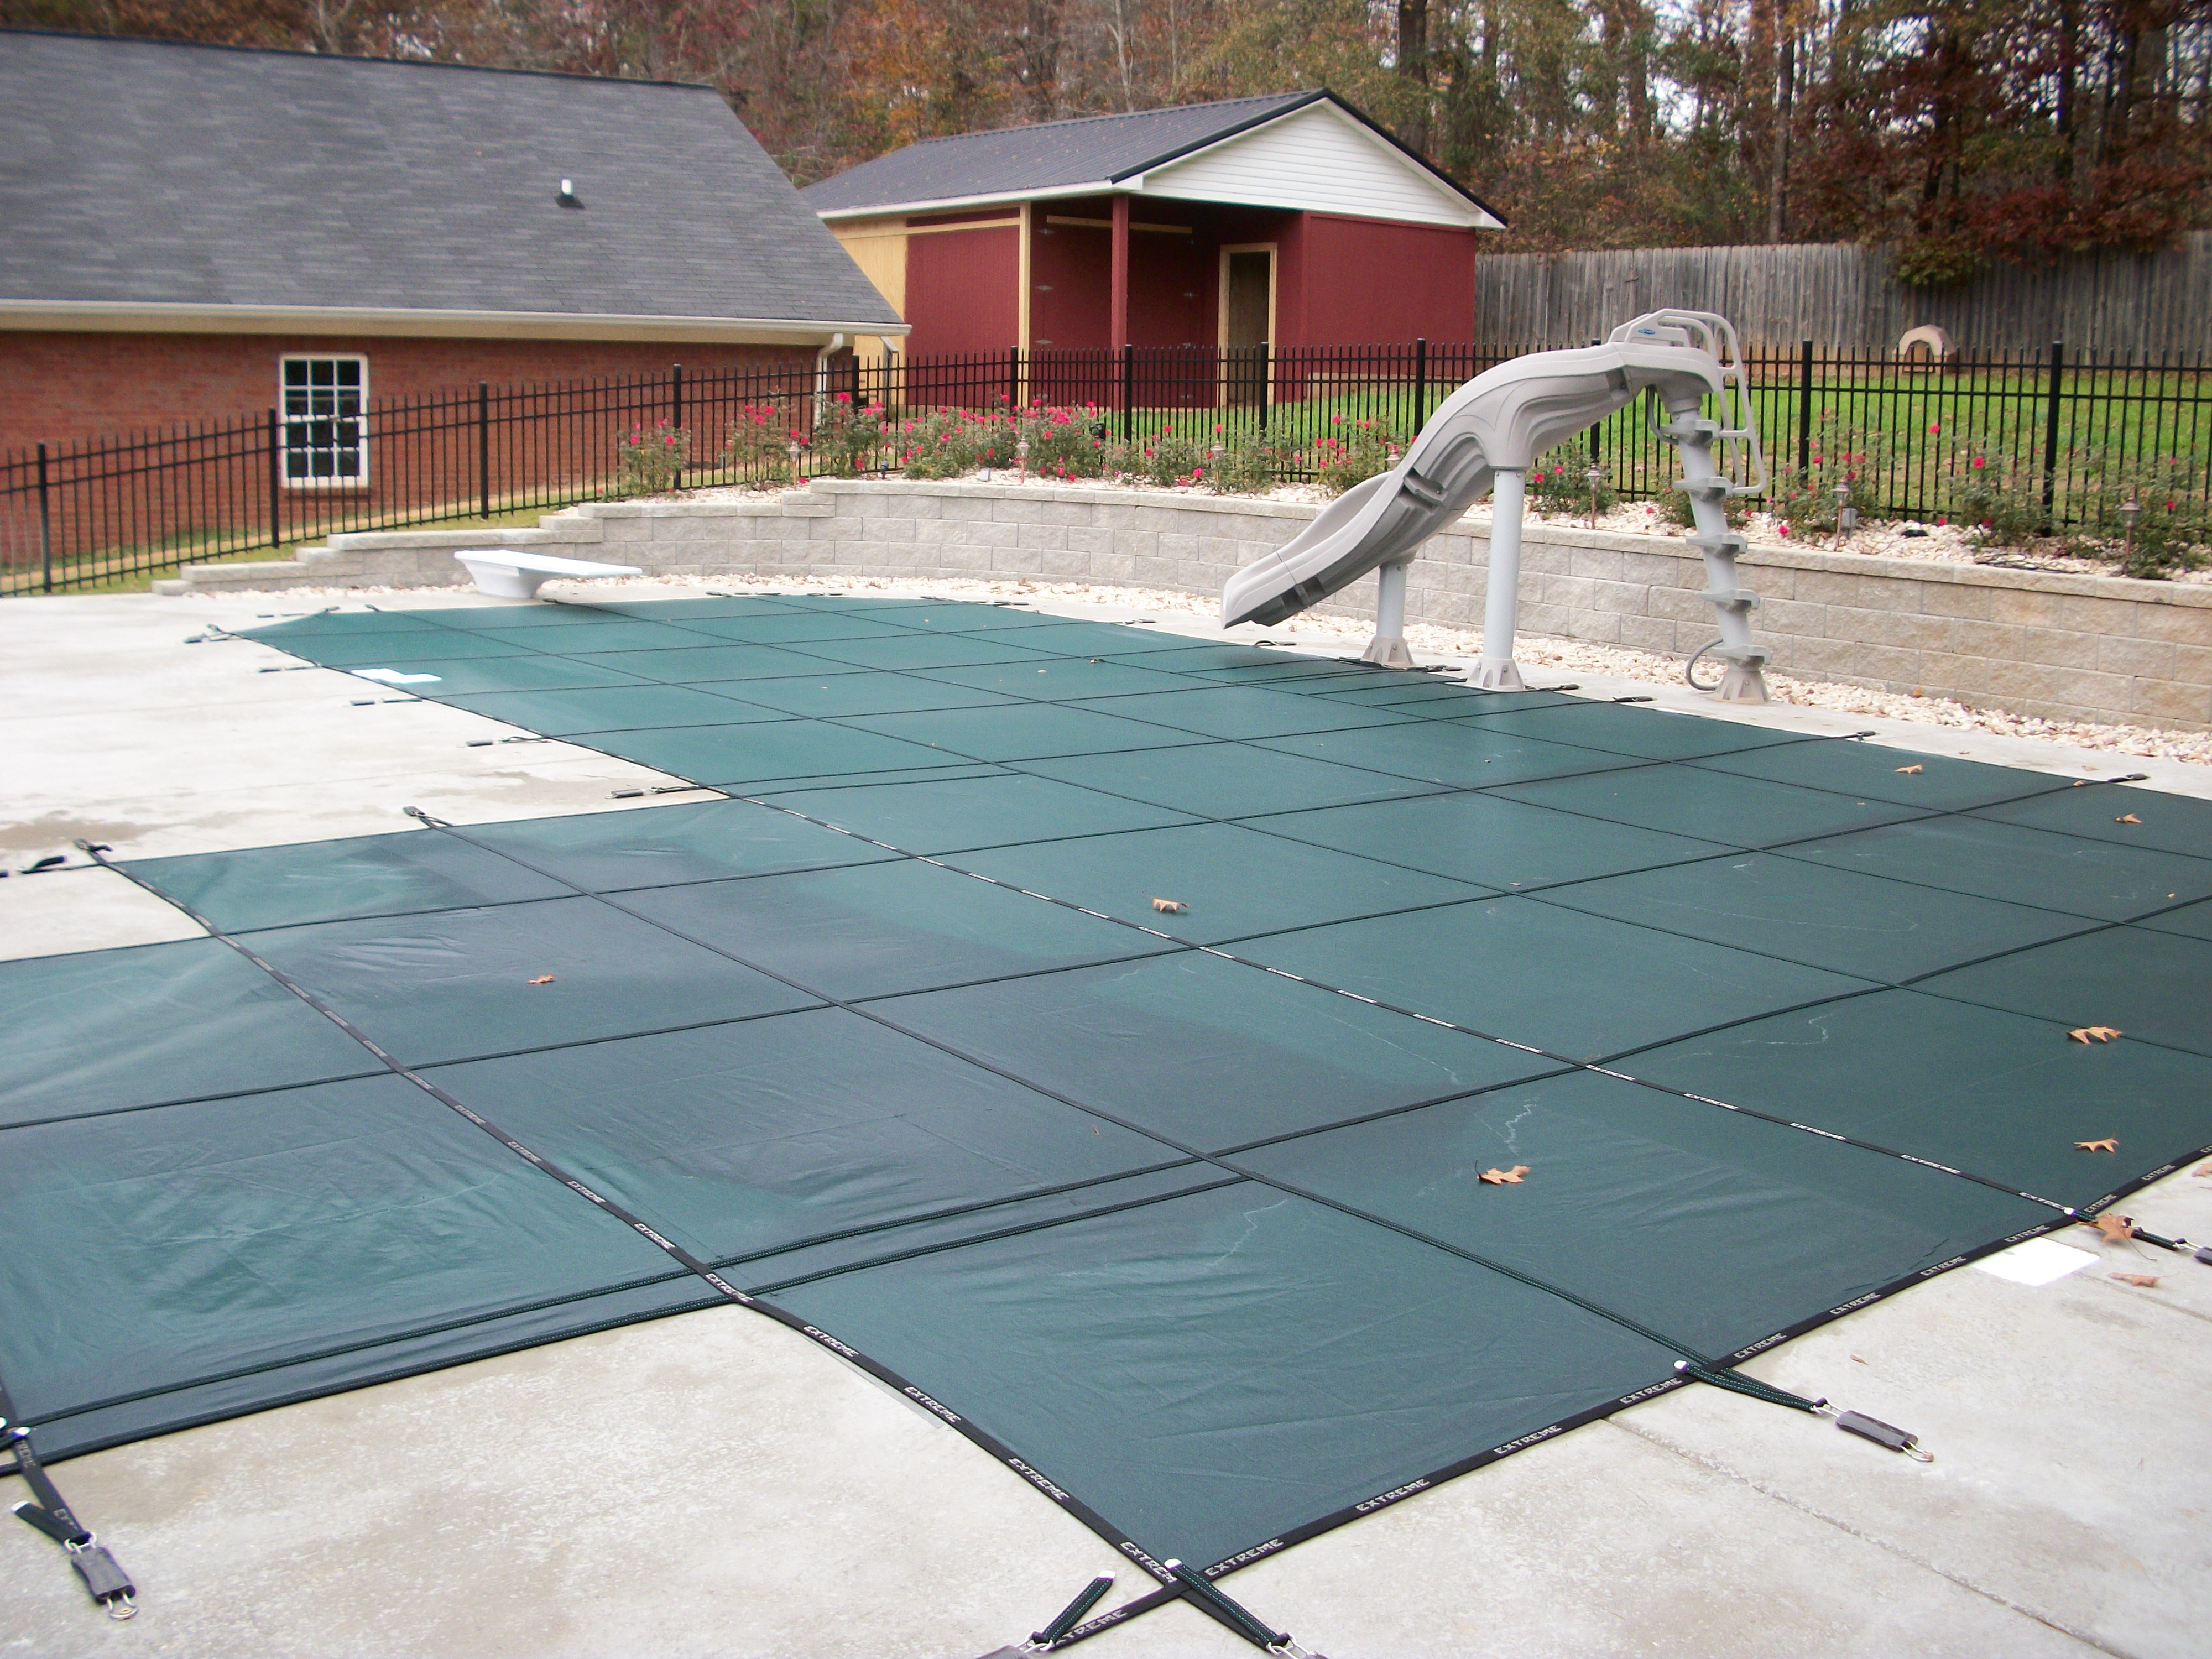 Safety Cover Shade Mesh Full L